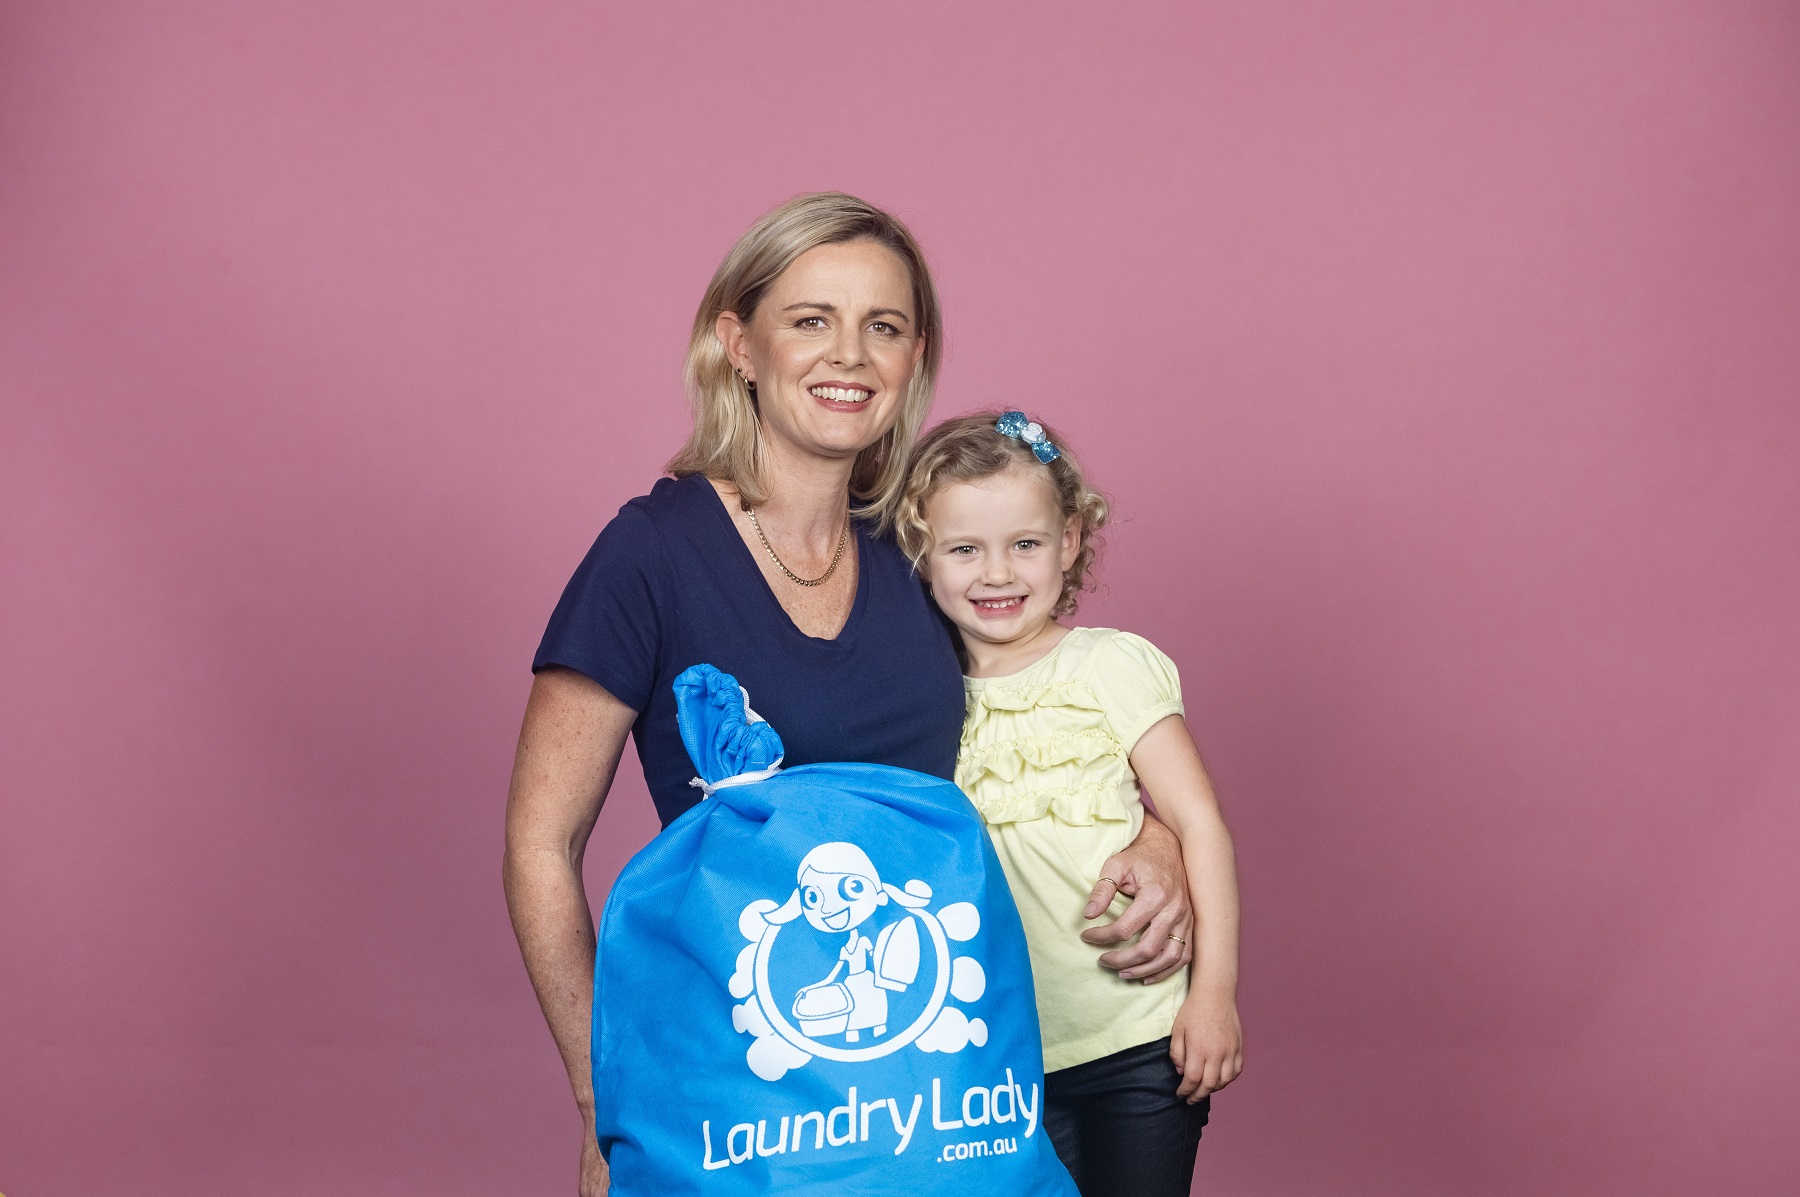 mobile laundry australia - local laundromat home business opportunity - laundry part time job